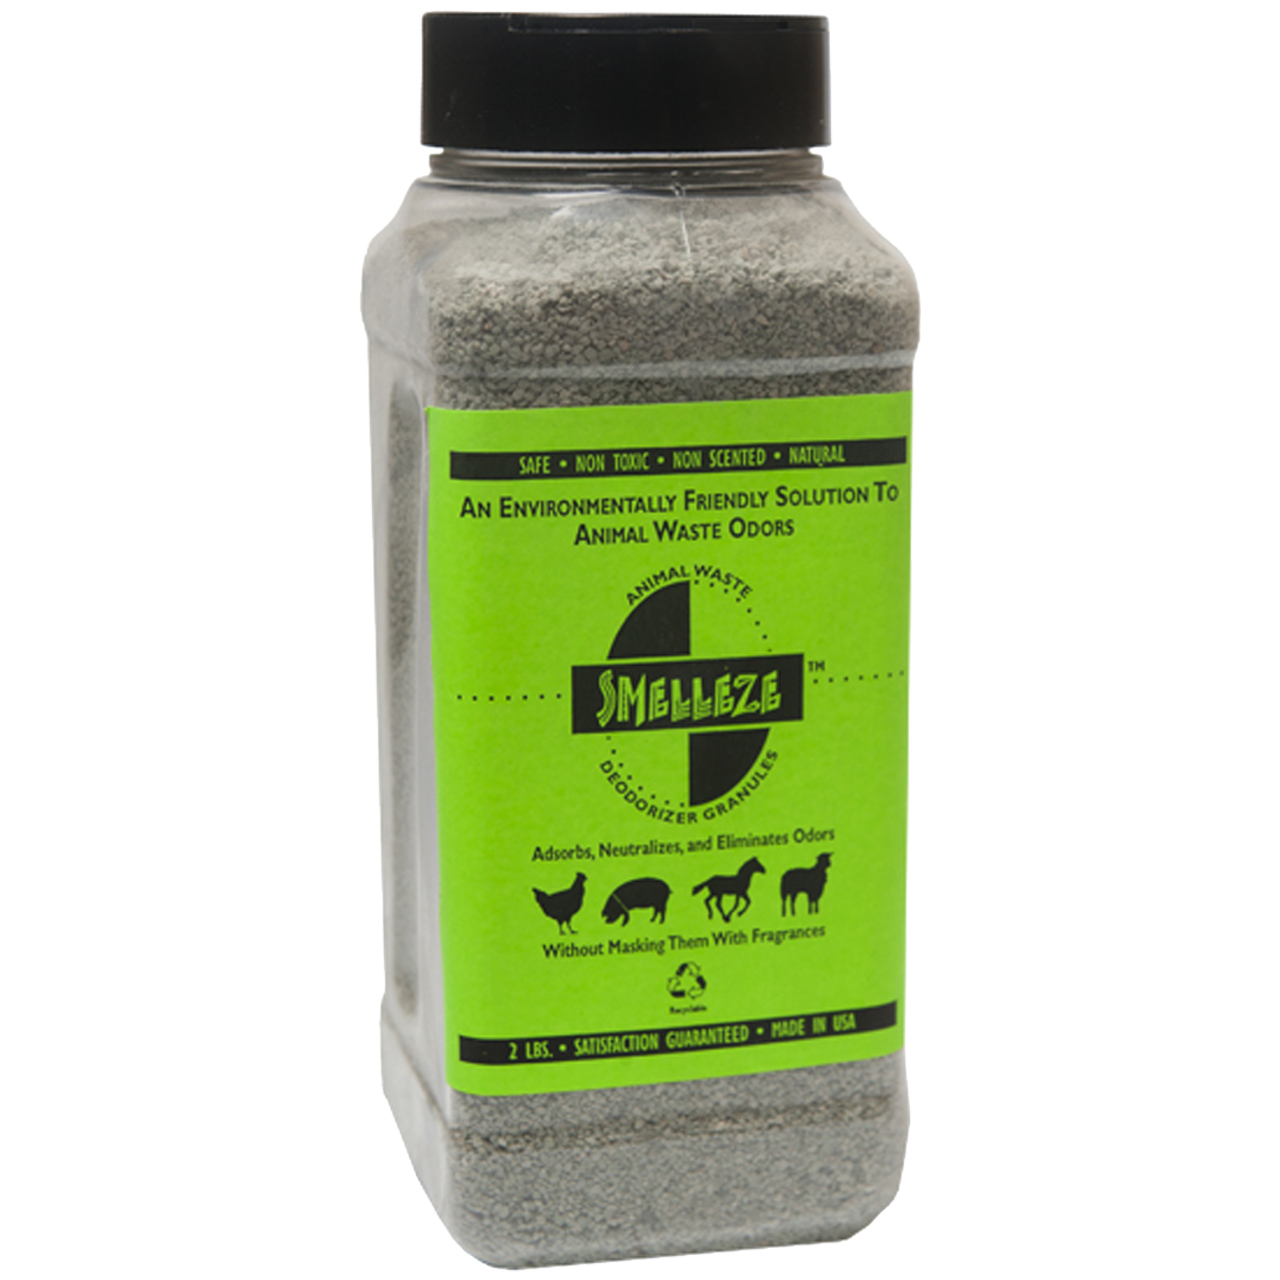 SMELLEZE Natural Animal Waste Odor Removal Deodorizer: 50 lb. Granules Rid Feces & Urine Stench